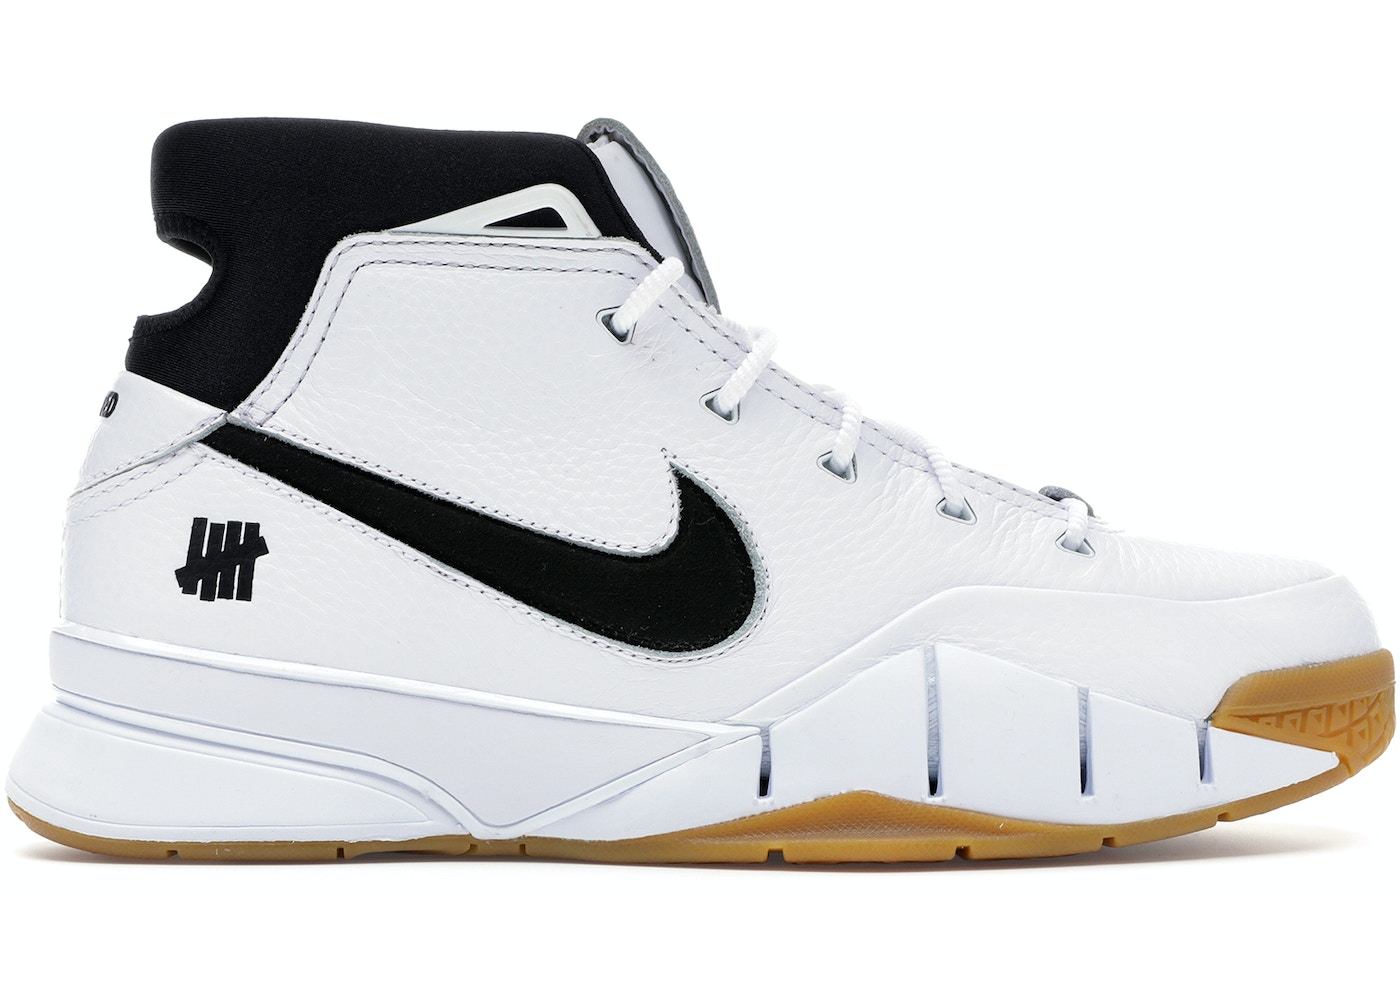 1a60d099718a Kobe 1 Protro Undefeated White - AQ3635-100